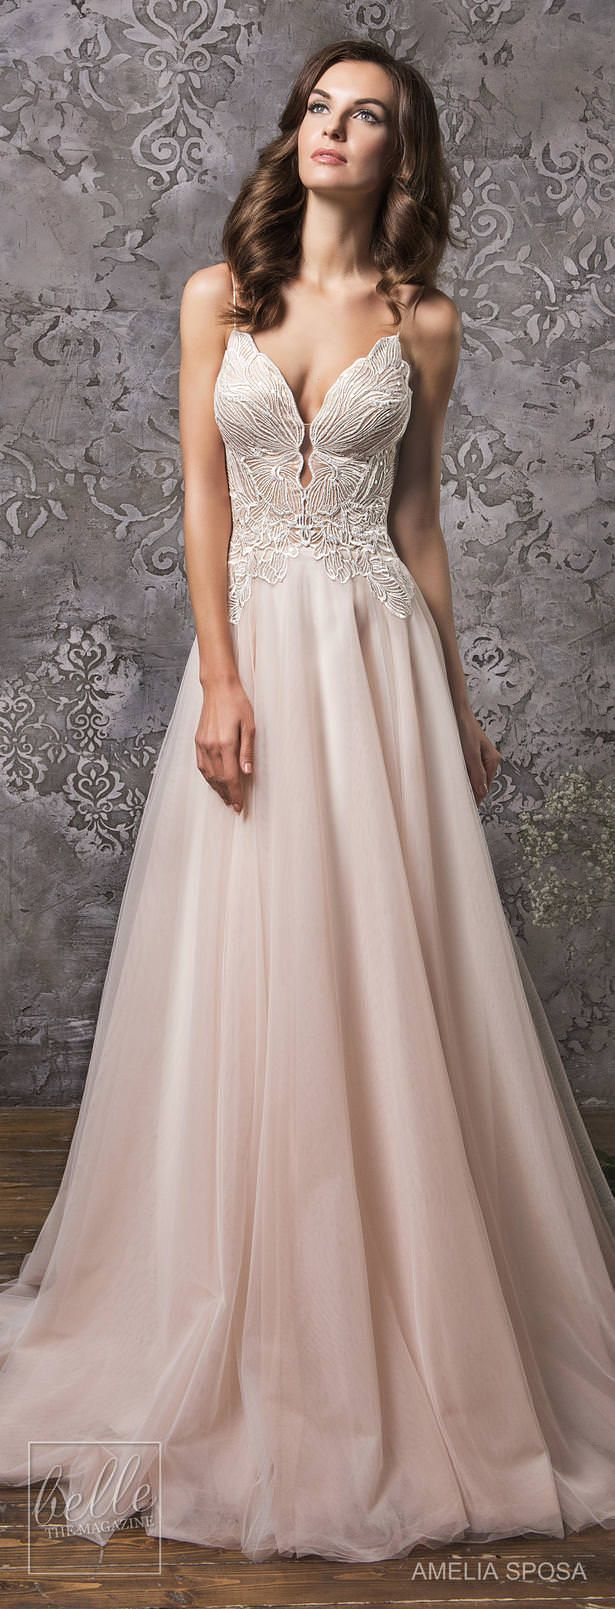 Amelia sposa wedding dress collection fall amelia sposa